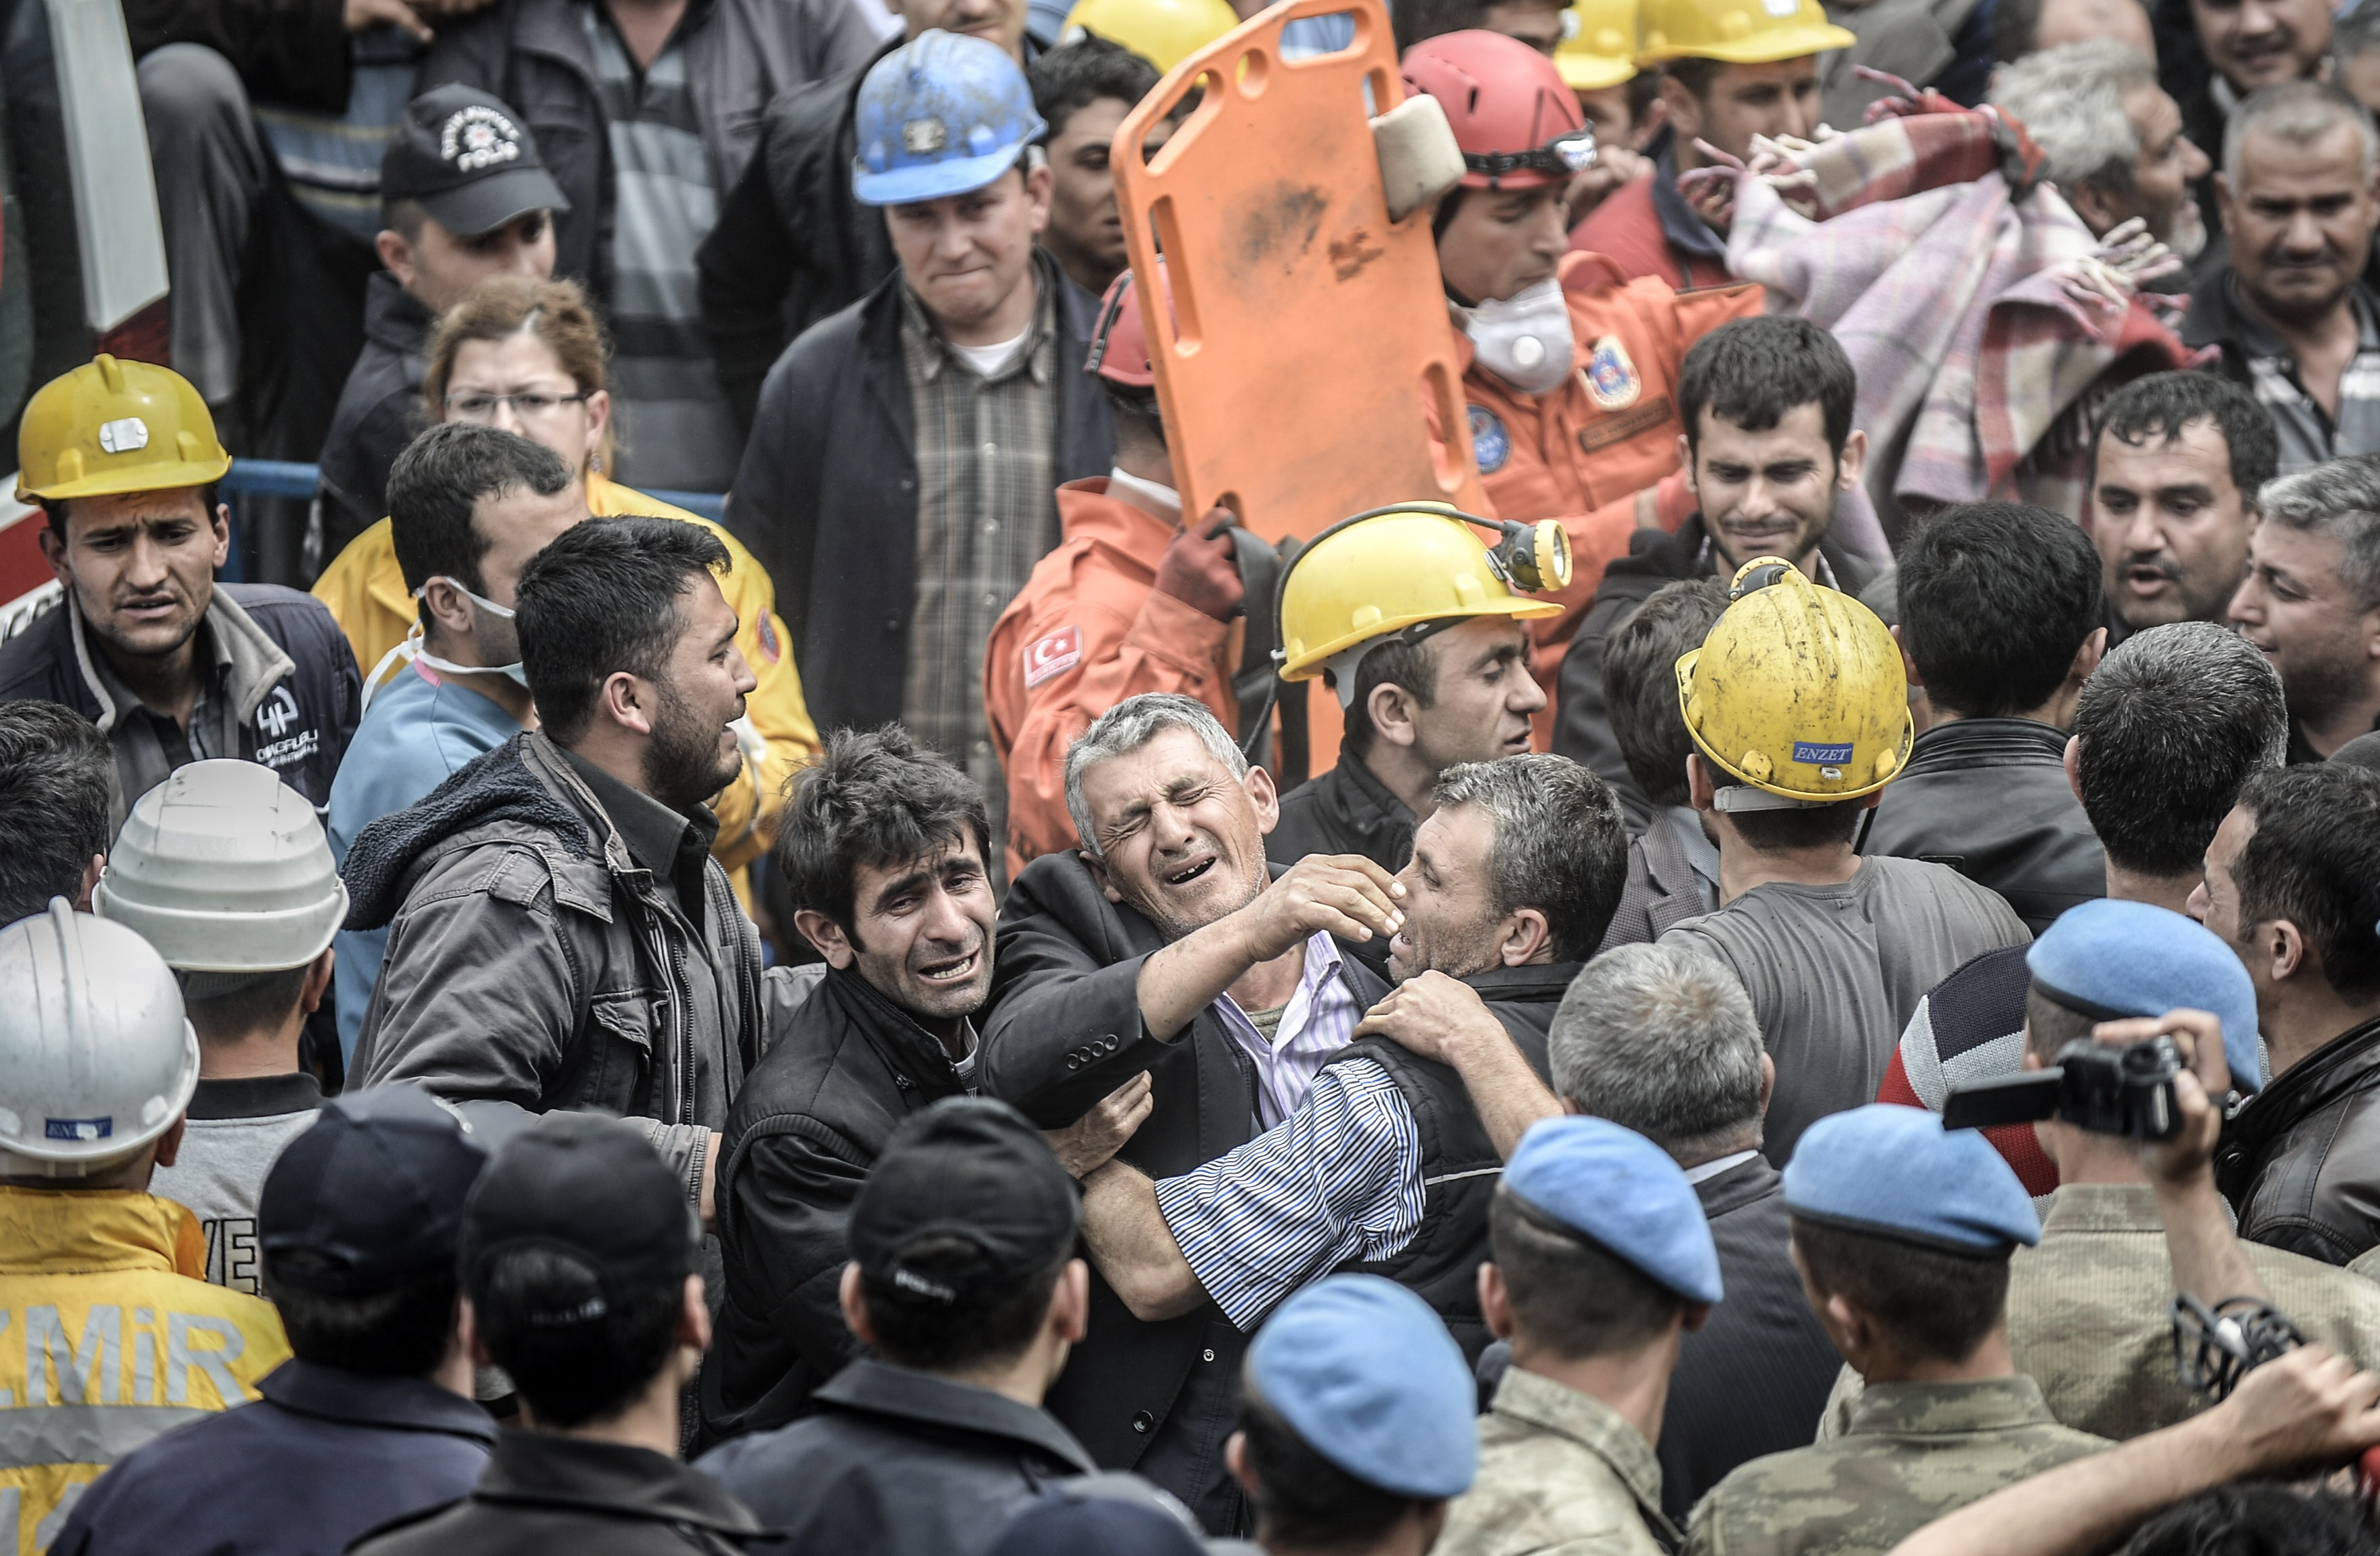 Miners react as bodies of their dead co-workers are carried out of the mine after searching for hours hundreds of their colleagues who remain trapped underground on May 14, 2014 after an explosion and fire in their coal mine in the western Turkish province of Manisa killed at least 201 people.    (AFP PHOTO/BULENT KILIC)